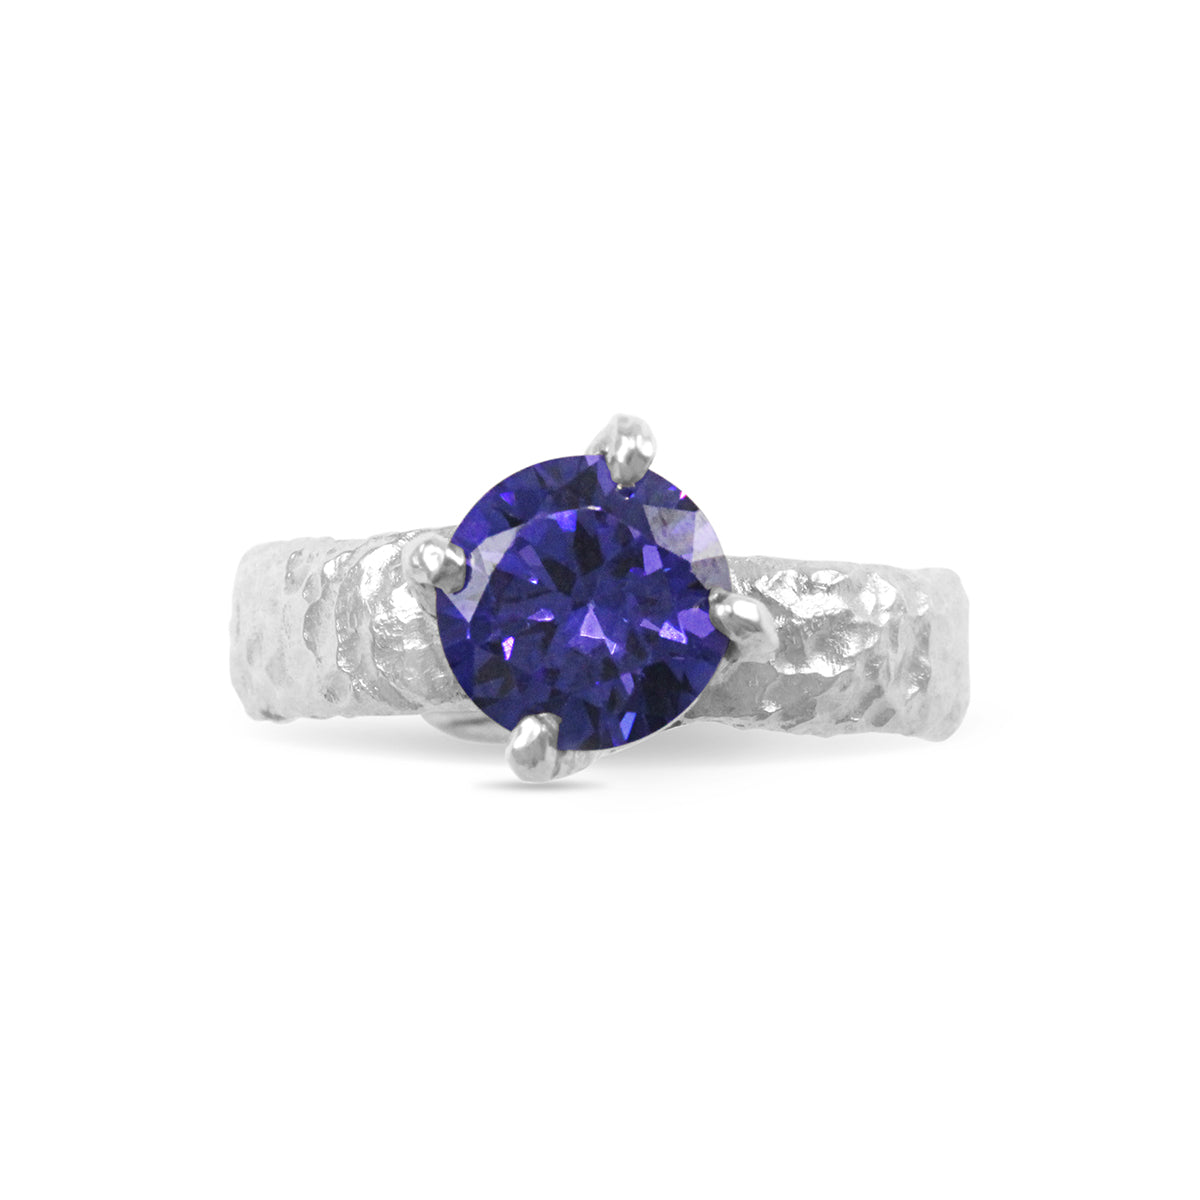 Contemporary ring handmade in sterling silver set with blue cubic zirconia stone. - Paul Magen